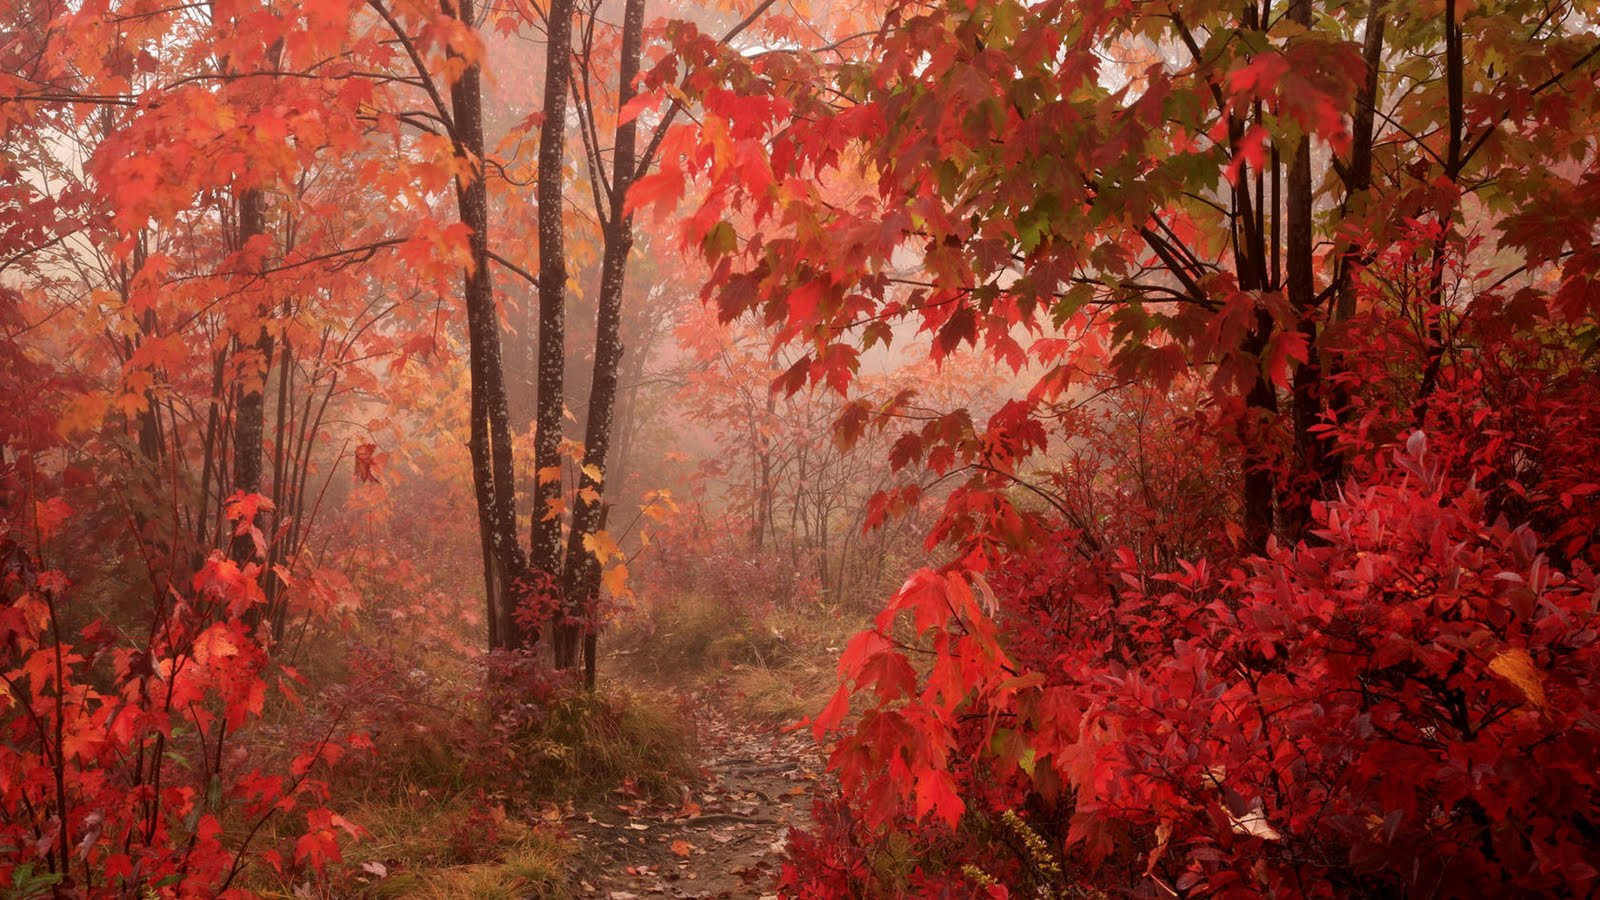 1600x900px free fall foliage wallpaper - wallpapersafari